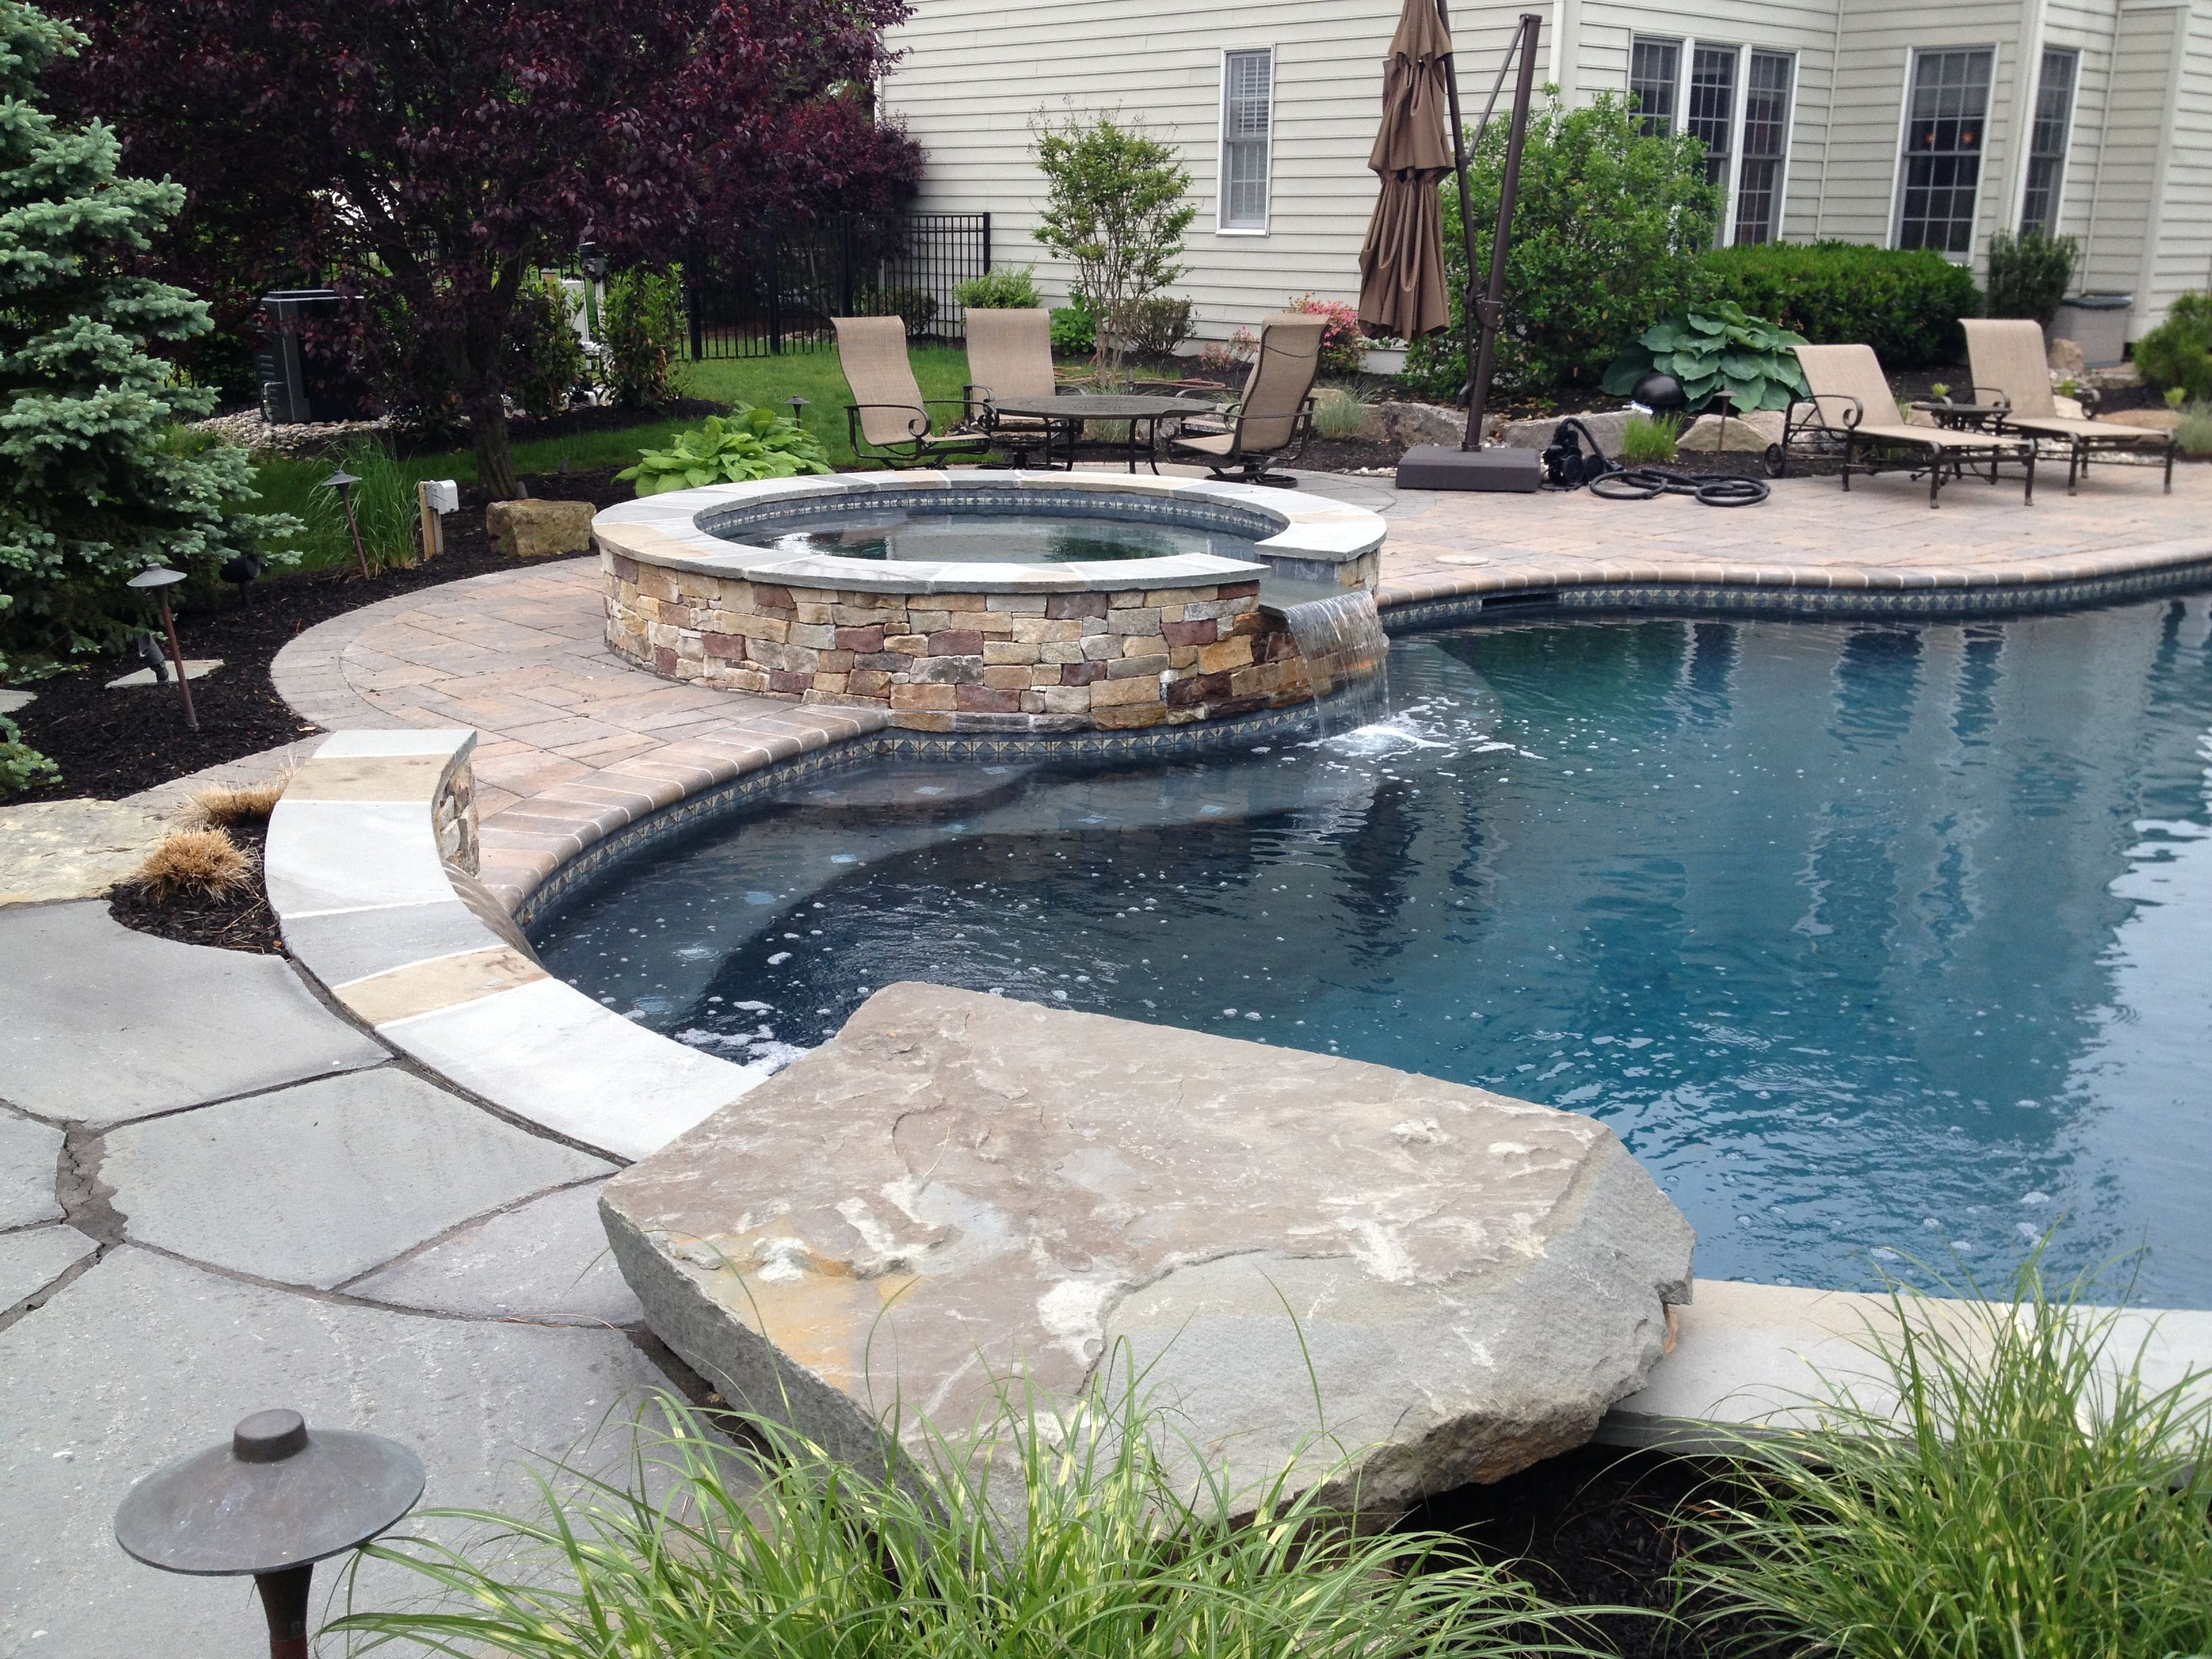 Jump Rock On A Swimming Pool In Newtown Pa Swimming Pool Slides Pool Patio Rock Garden Design